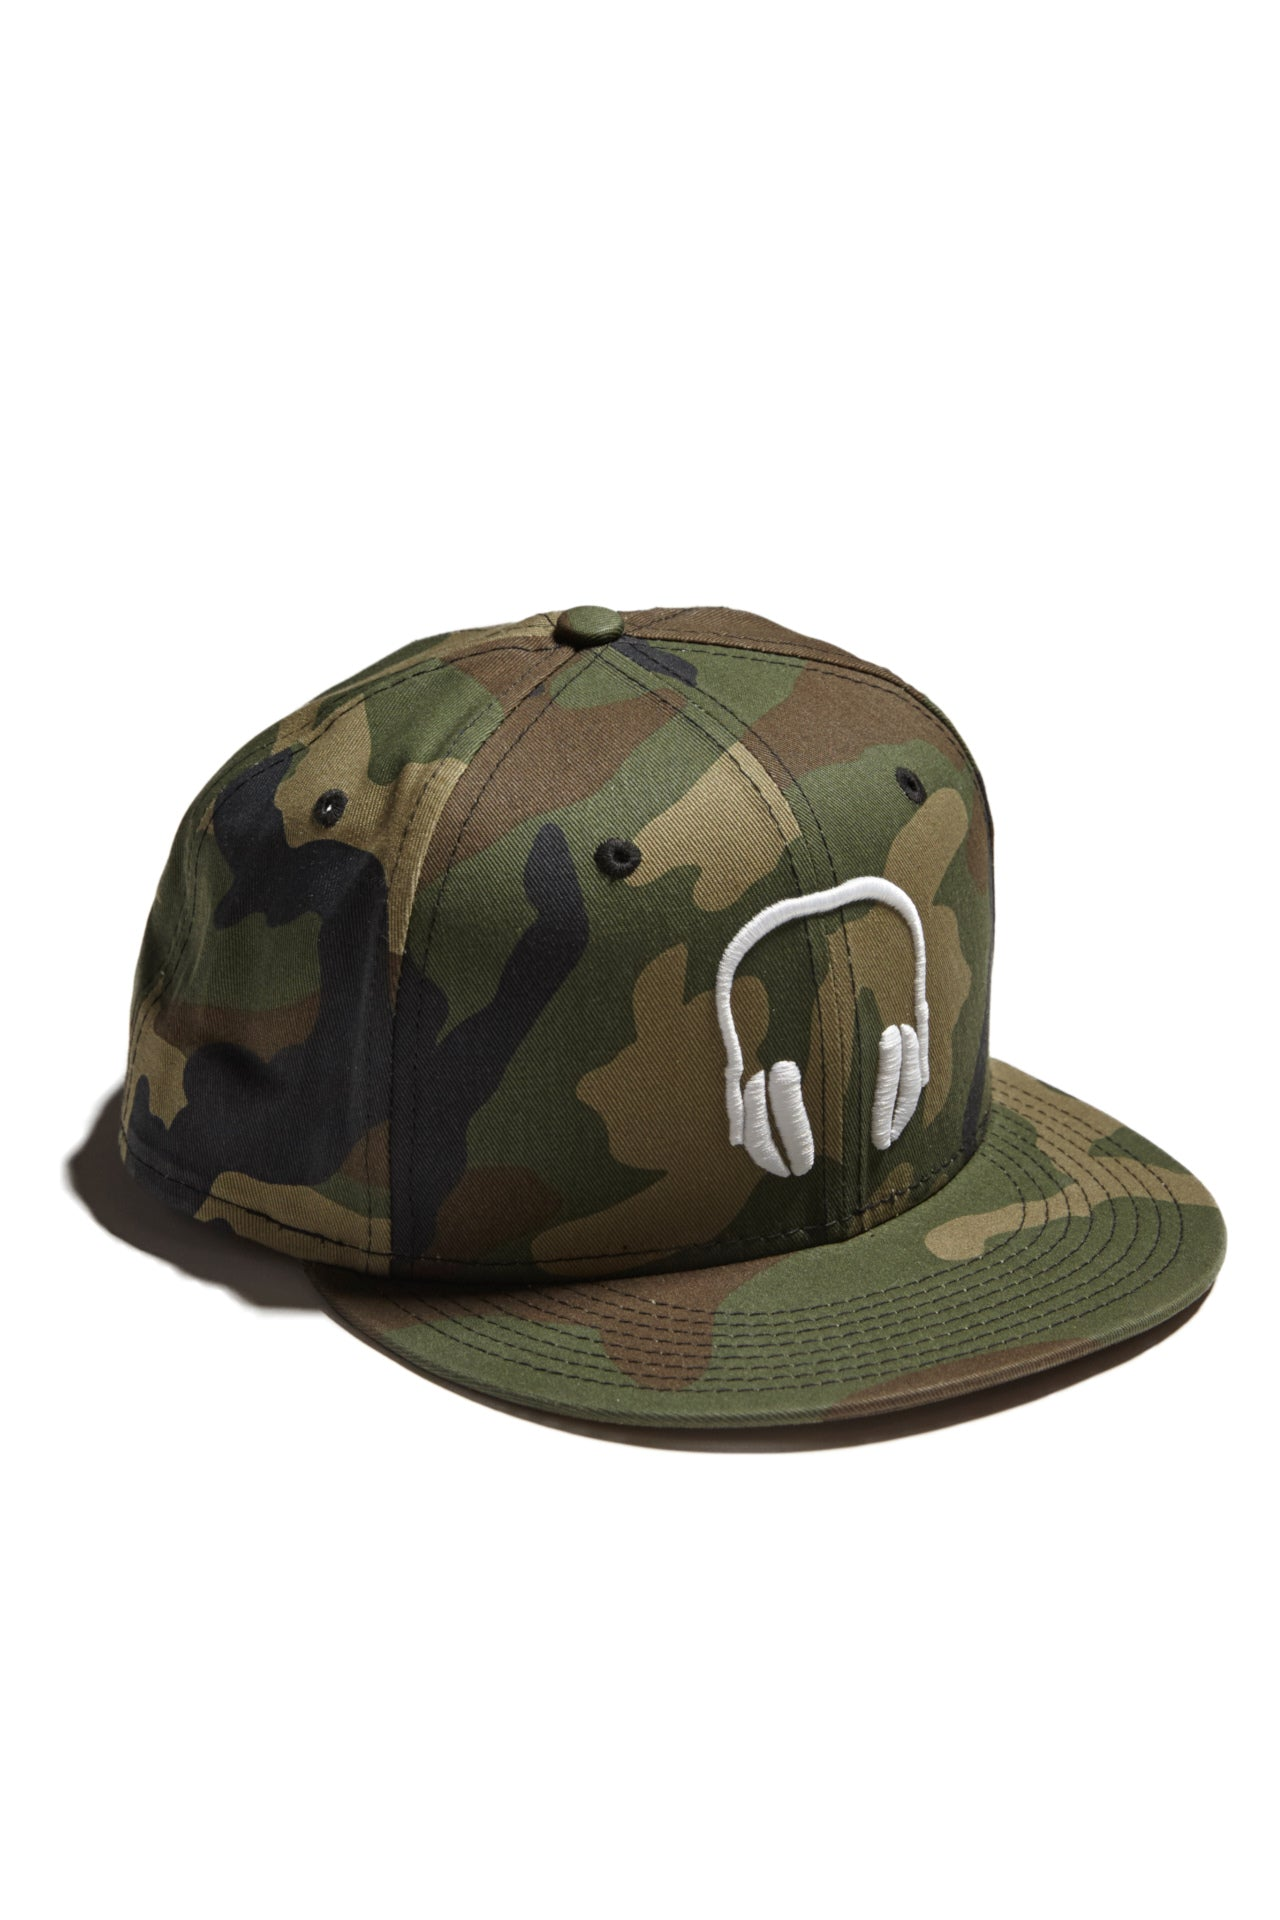 SOUNDOFF.HEADPHONES.SNAPBACK.WHITE.EMBROIDERY.ON.CAMO.